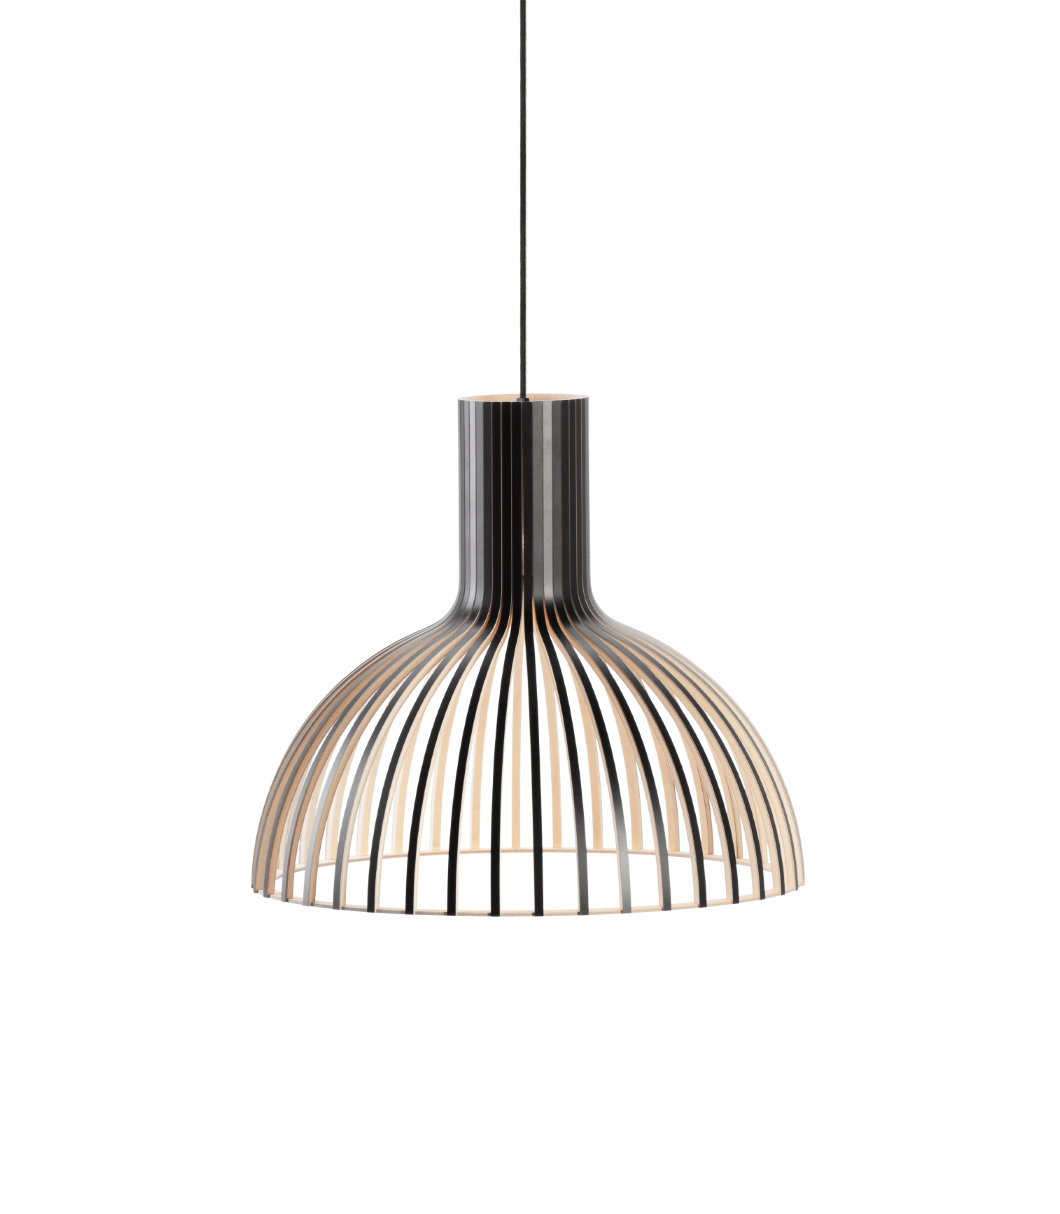 Victo Small 4251 pendant lamp color black